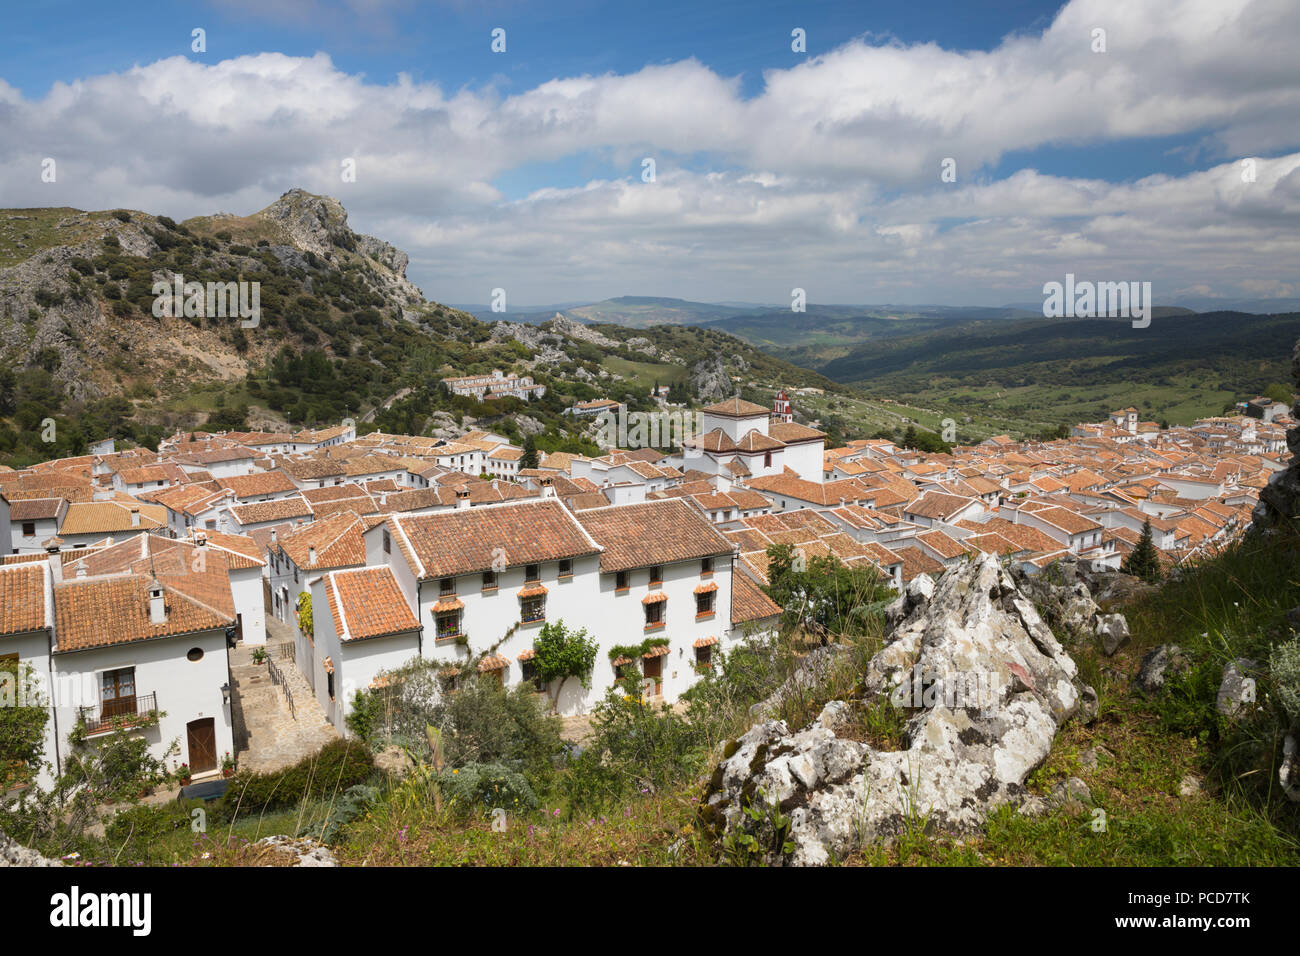 View over Andalucian white village, Grazalema, Sierra de Grazalema Natural Park, Andalucia, Spain, Europe - Stock Image